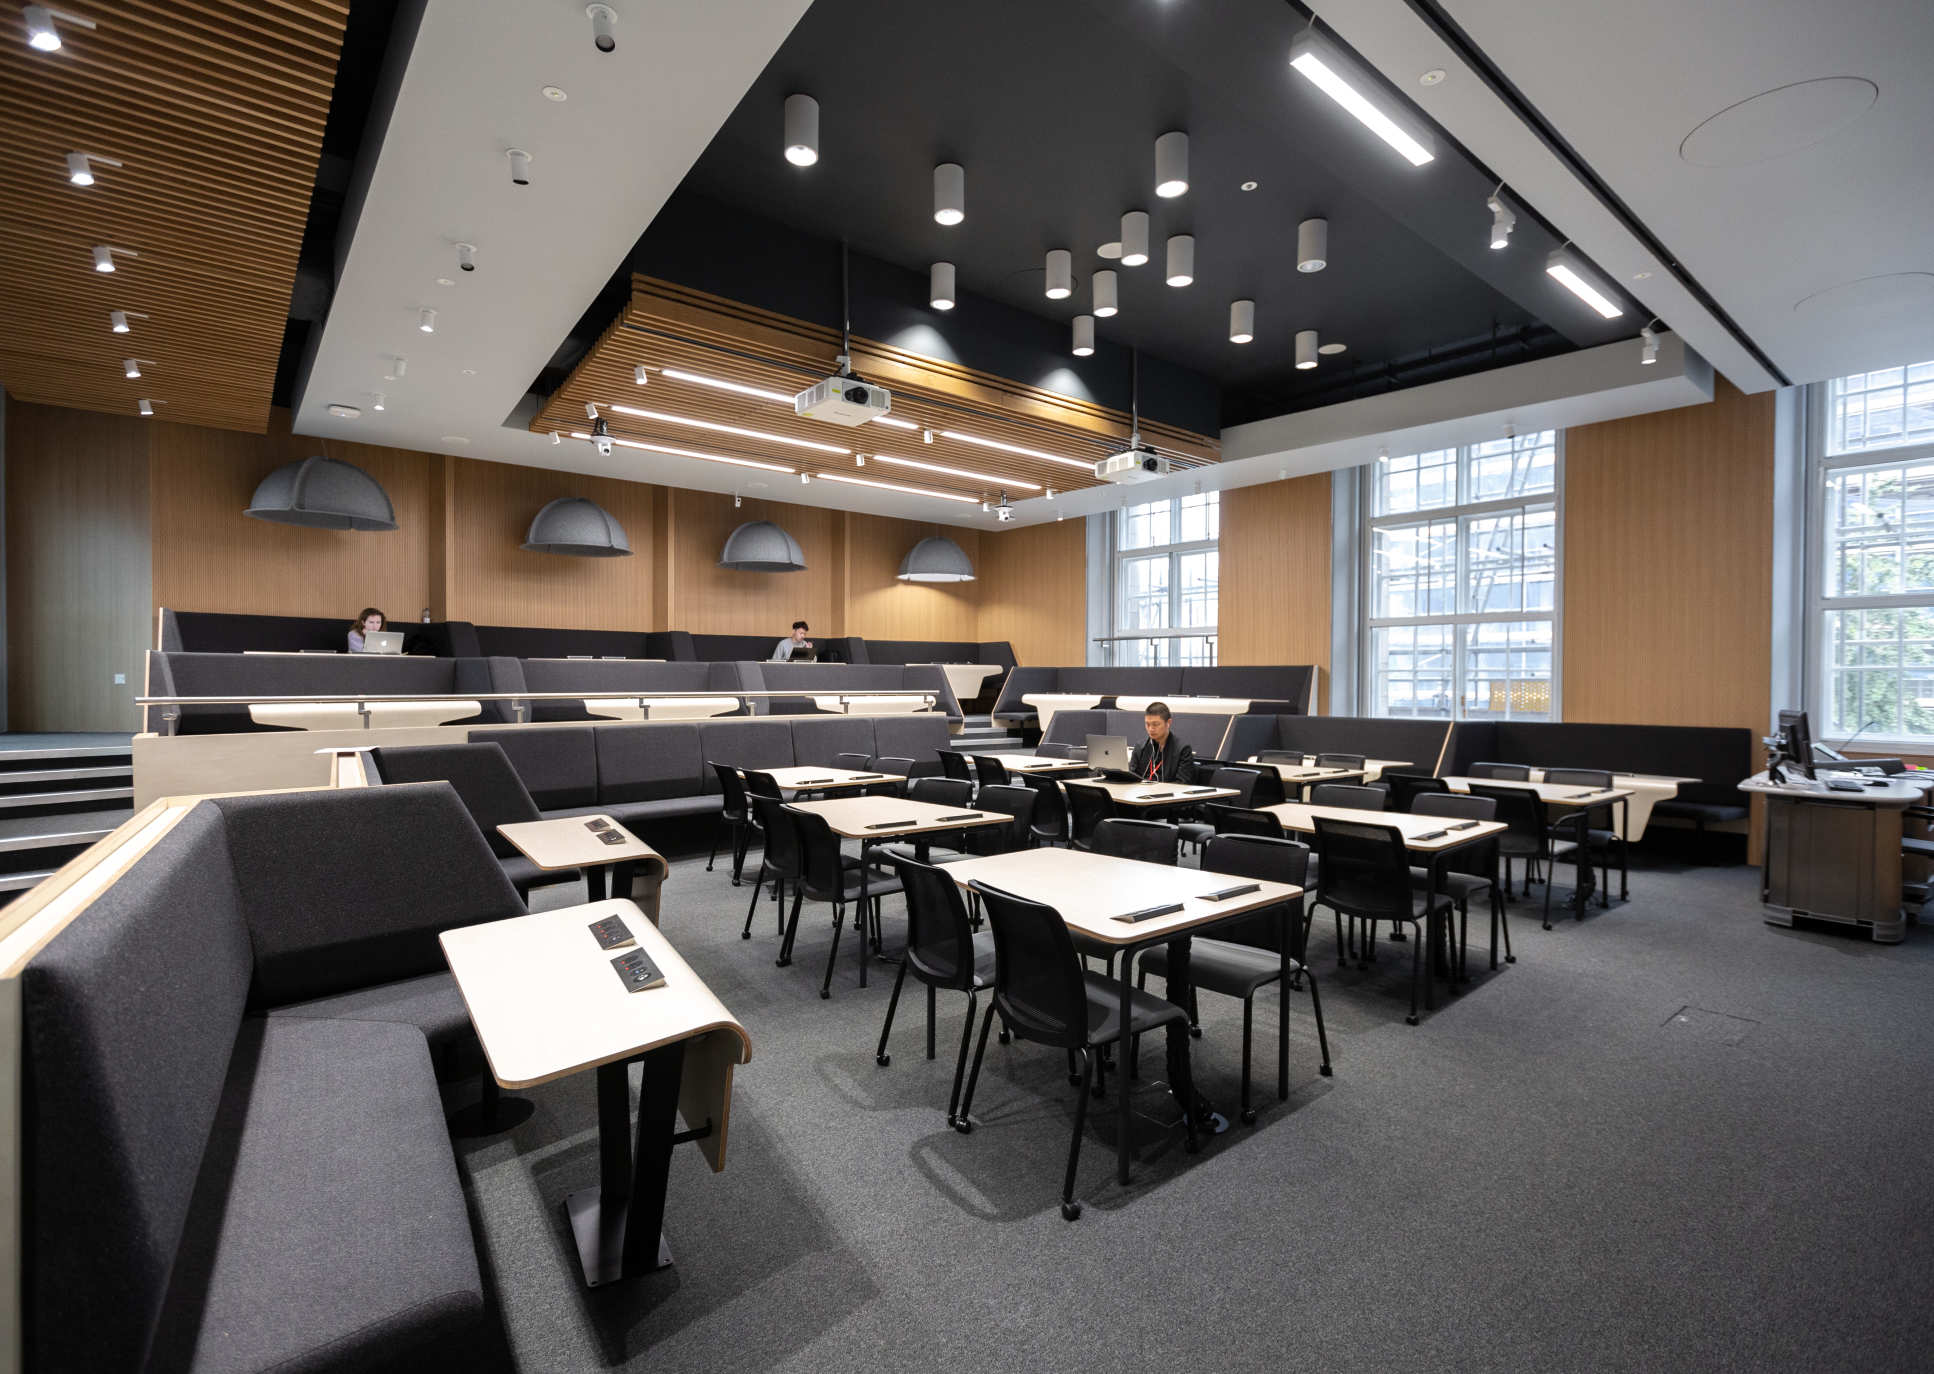 Royal School of Mines Lecture Theatre 147, post-renovation, being used for quiet study